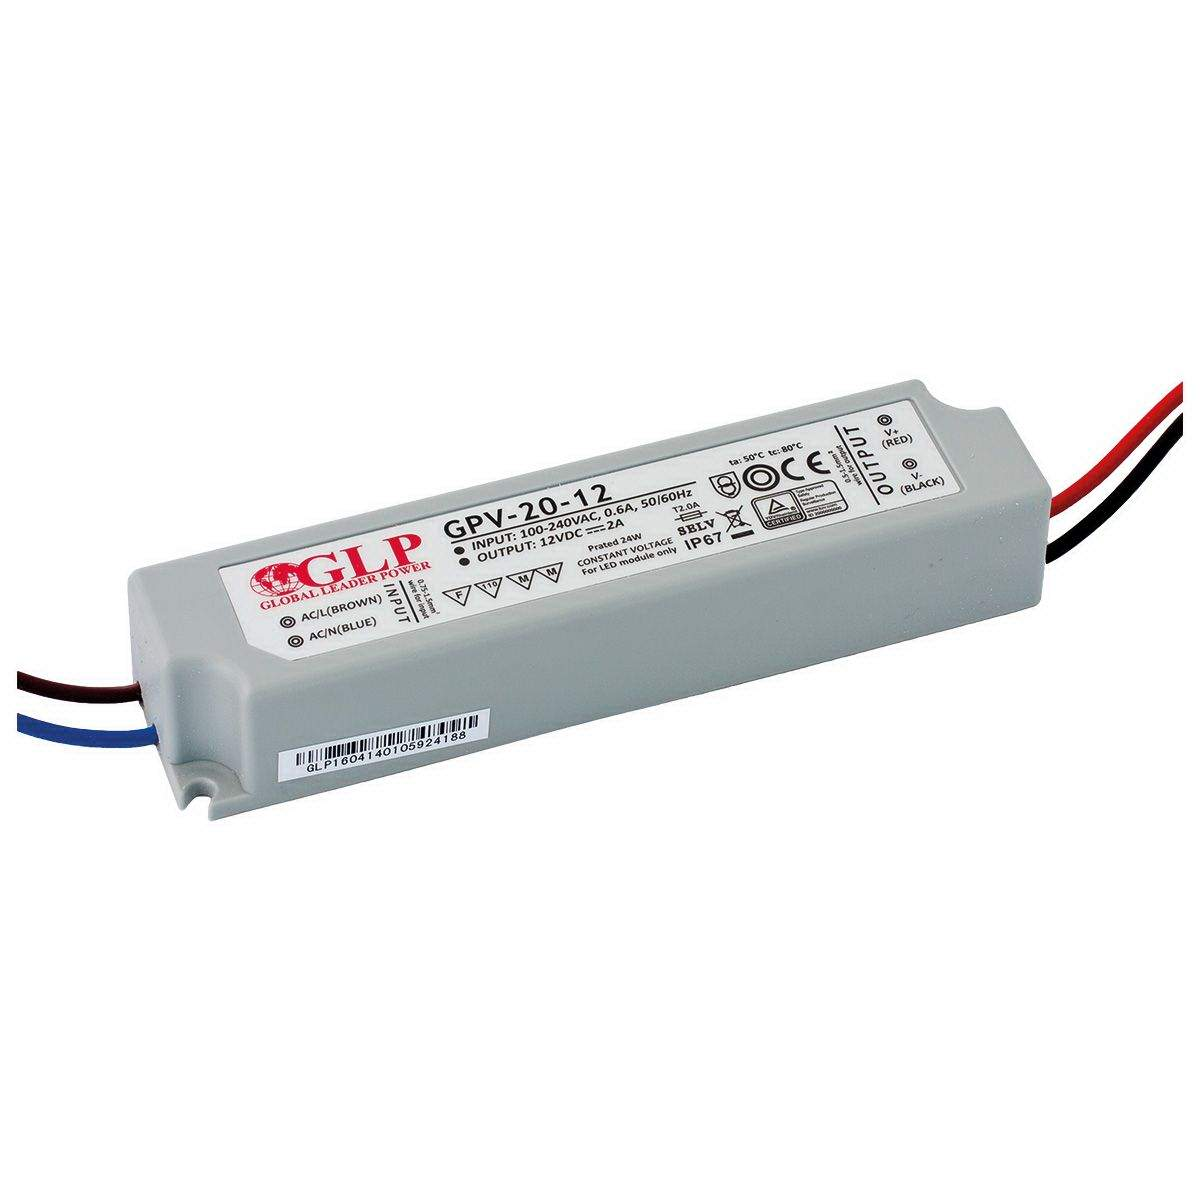 LED Toiteplokk GLP POWER 12V DC GPV-20-12  20W  IP67